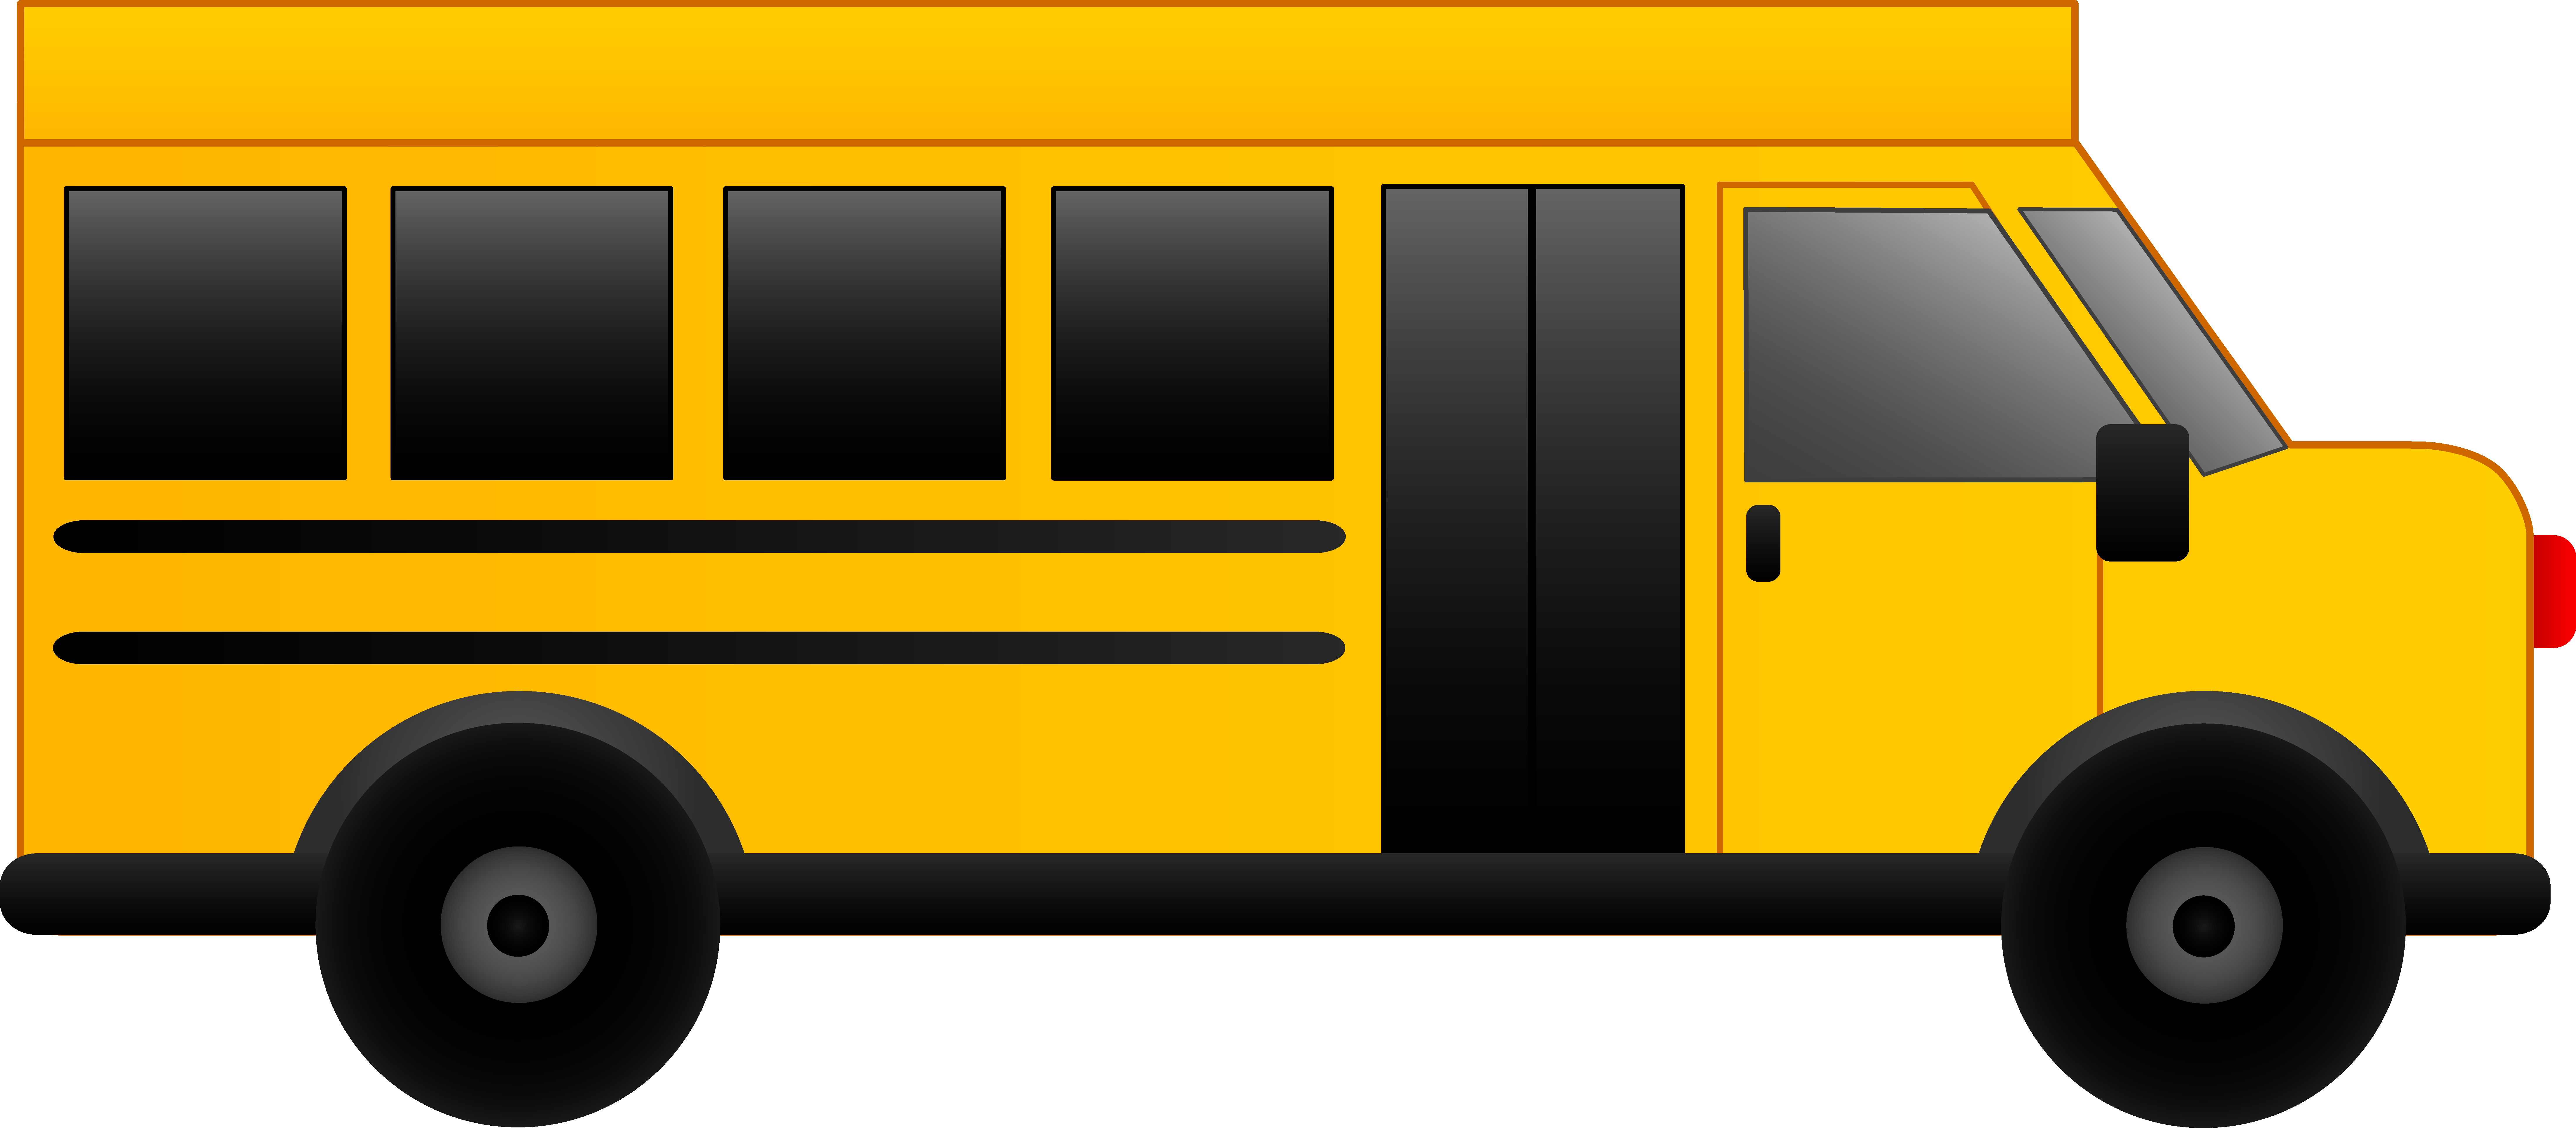 Free clipart of school buses.